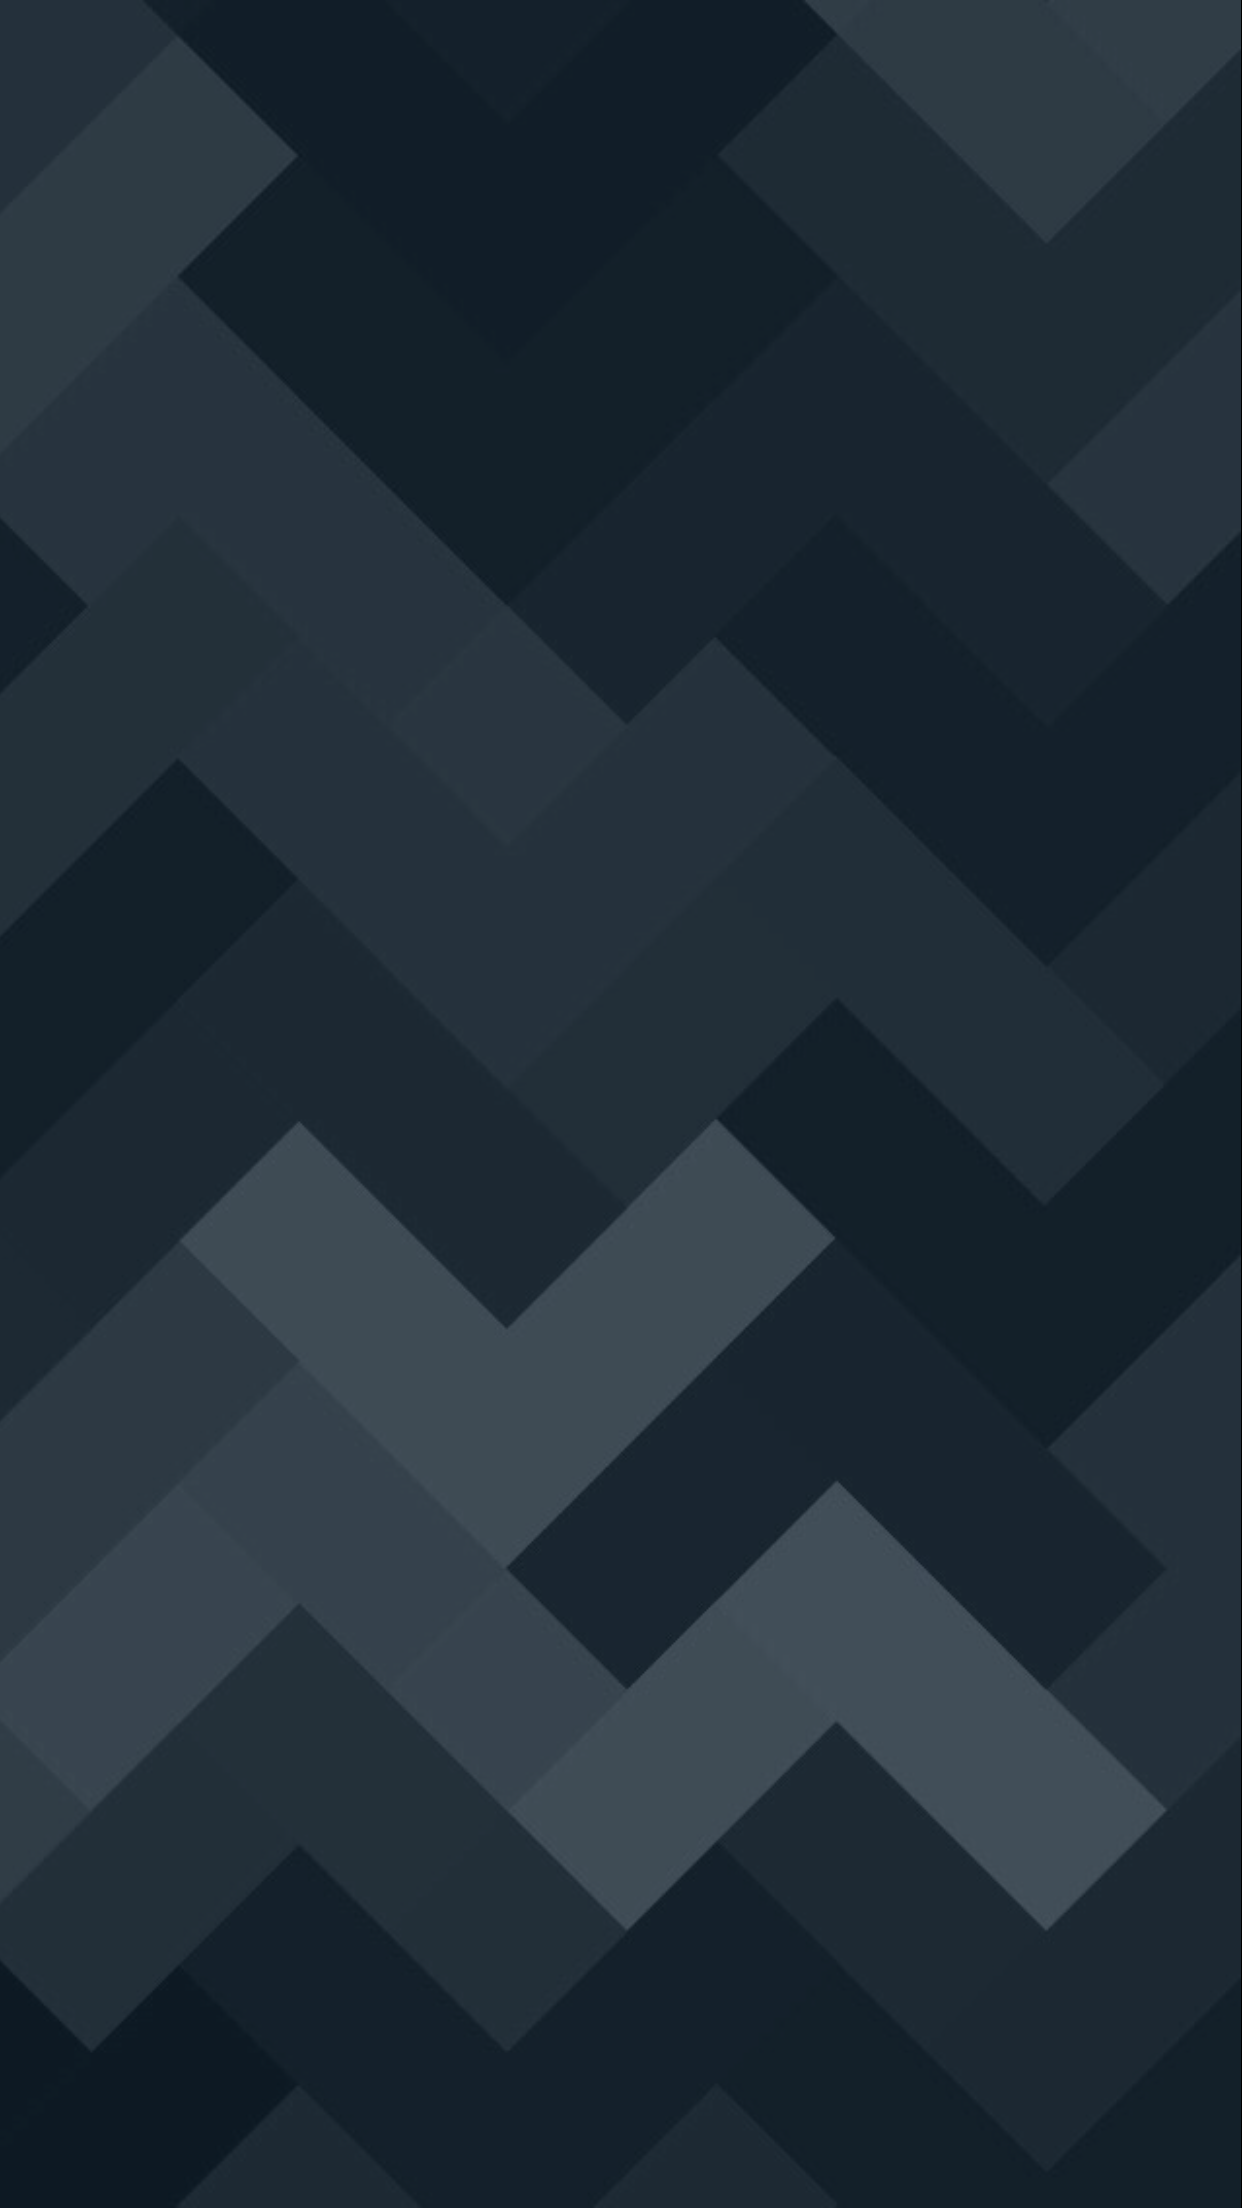 Shapes Black Wallpaper iPhone 6 Plus